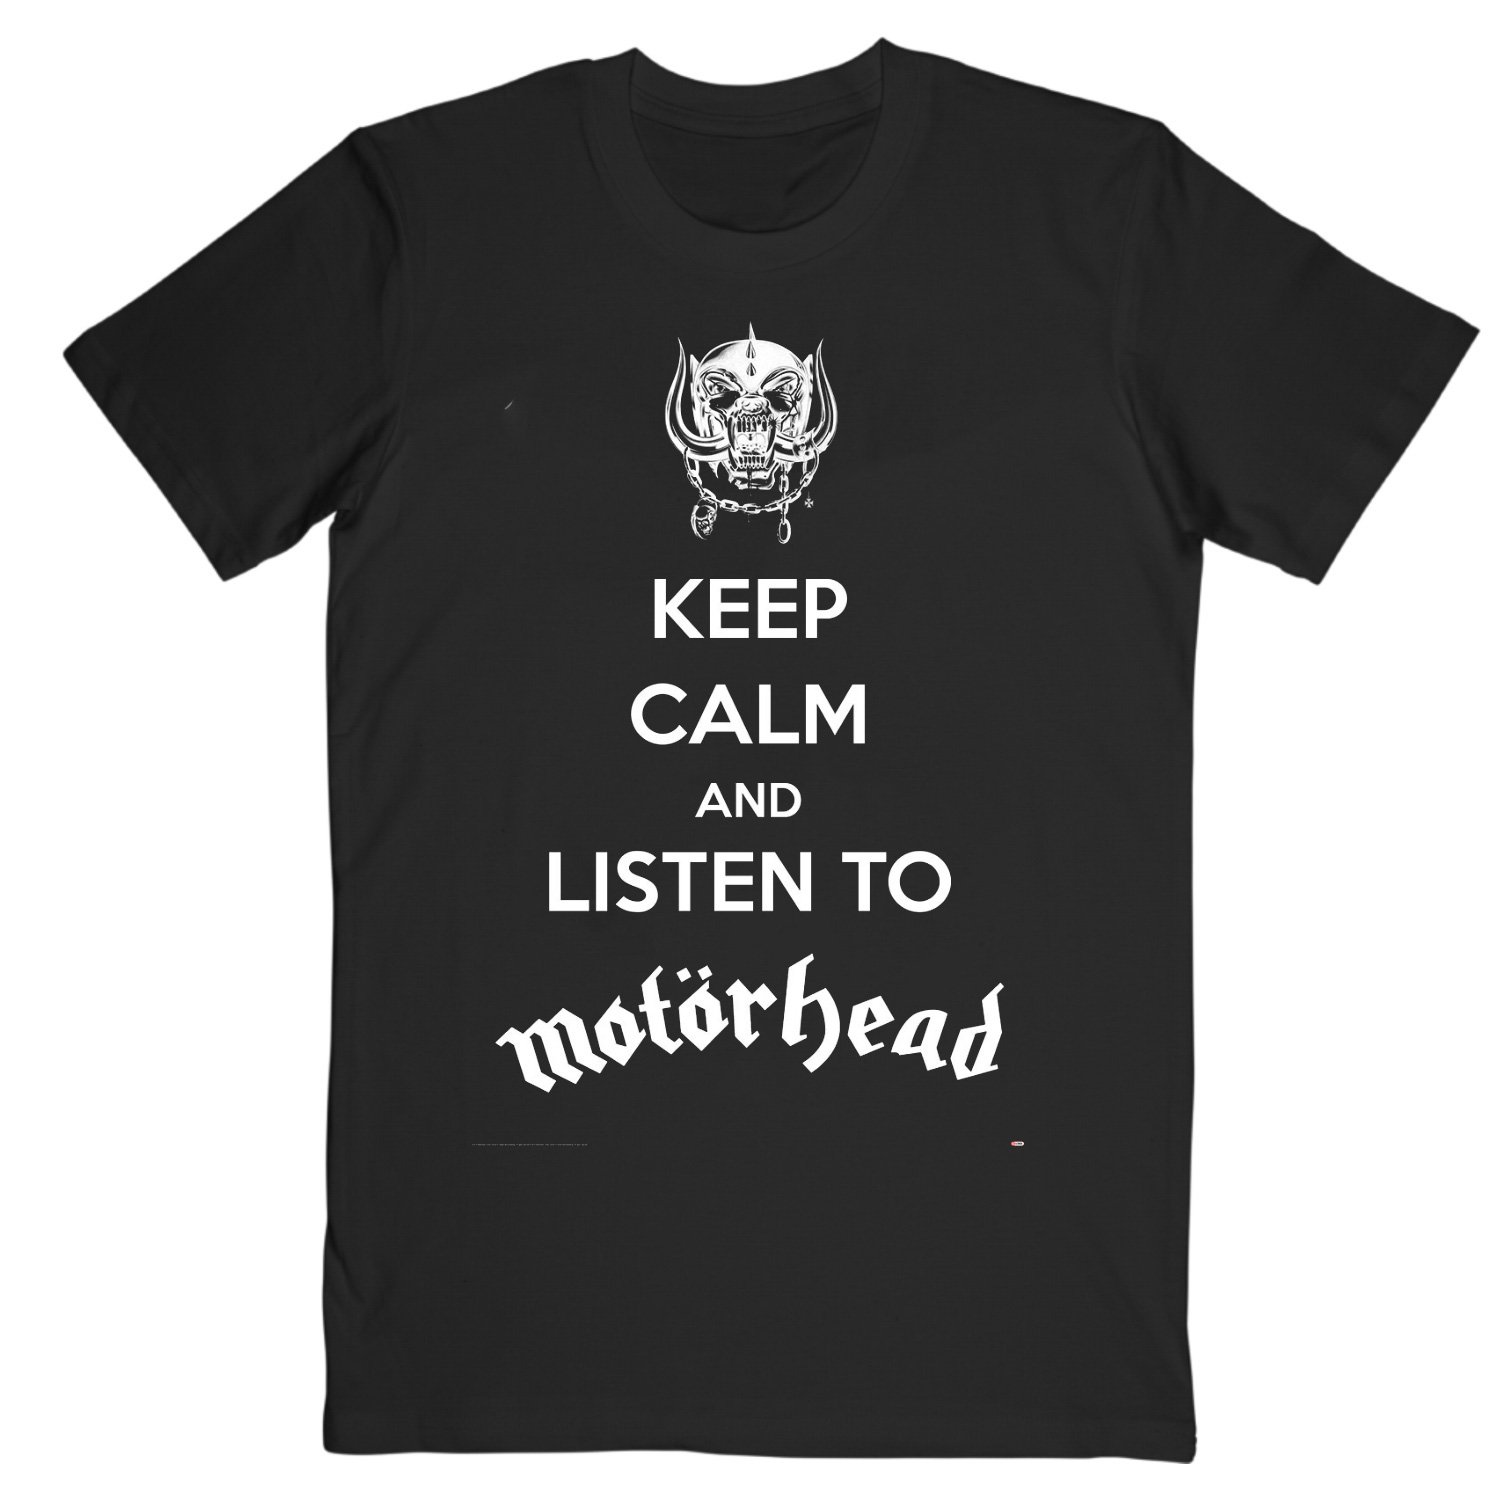 Motorhead - Keep Calm Tee